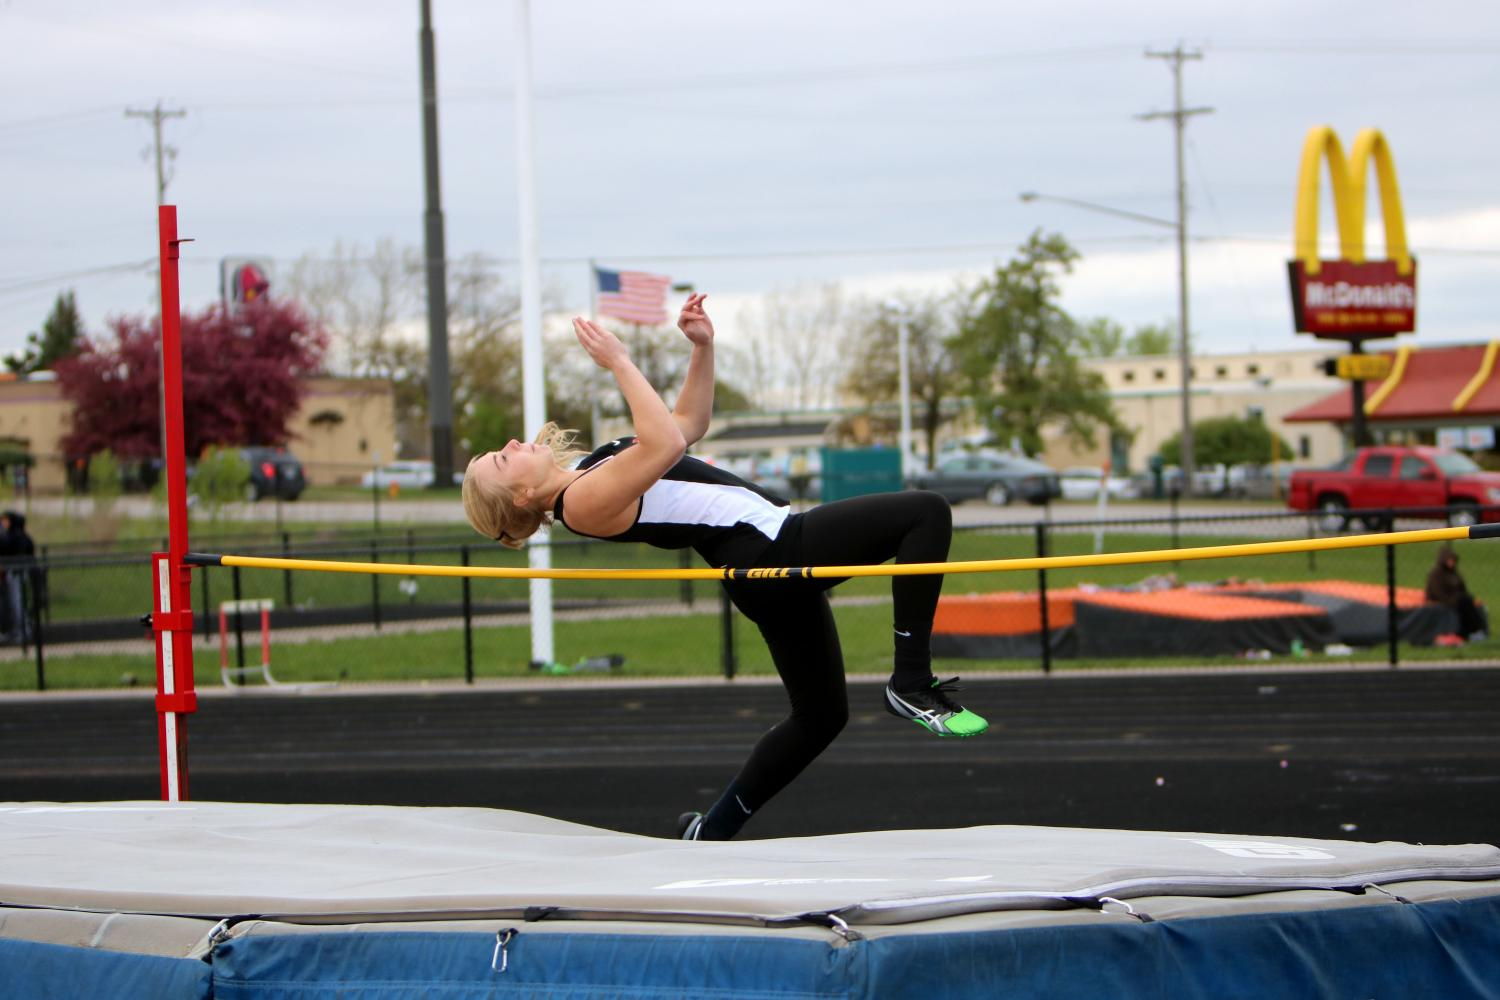 During her field event, sophomore Chloe Idoni jumps over the bar during high jump.